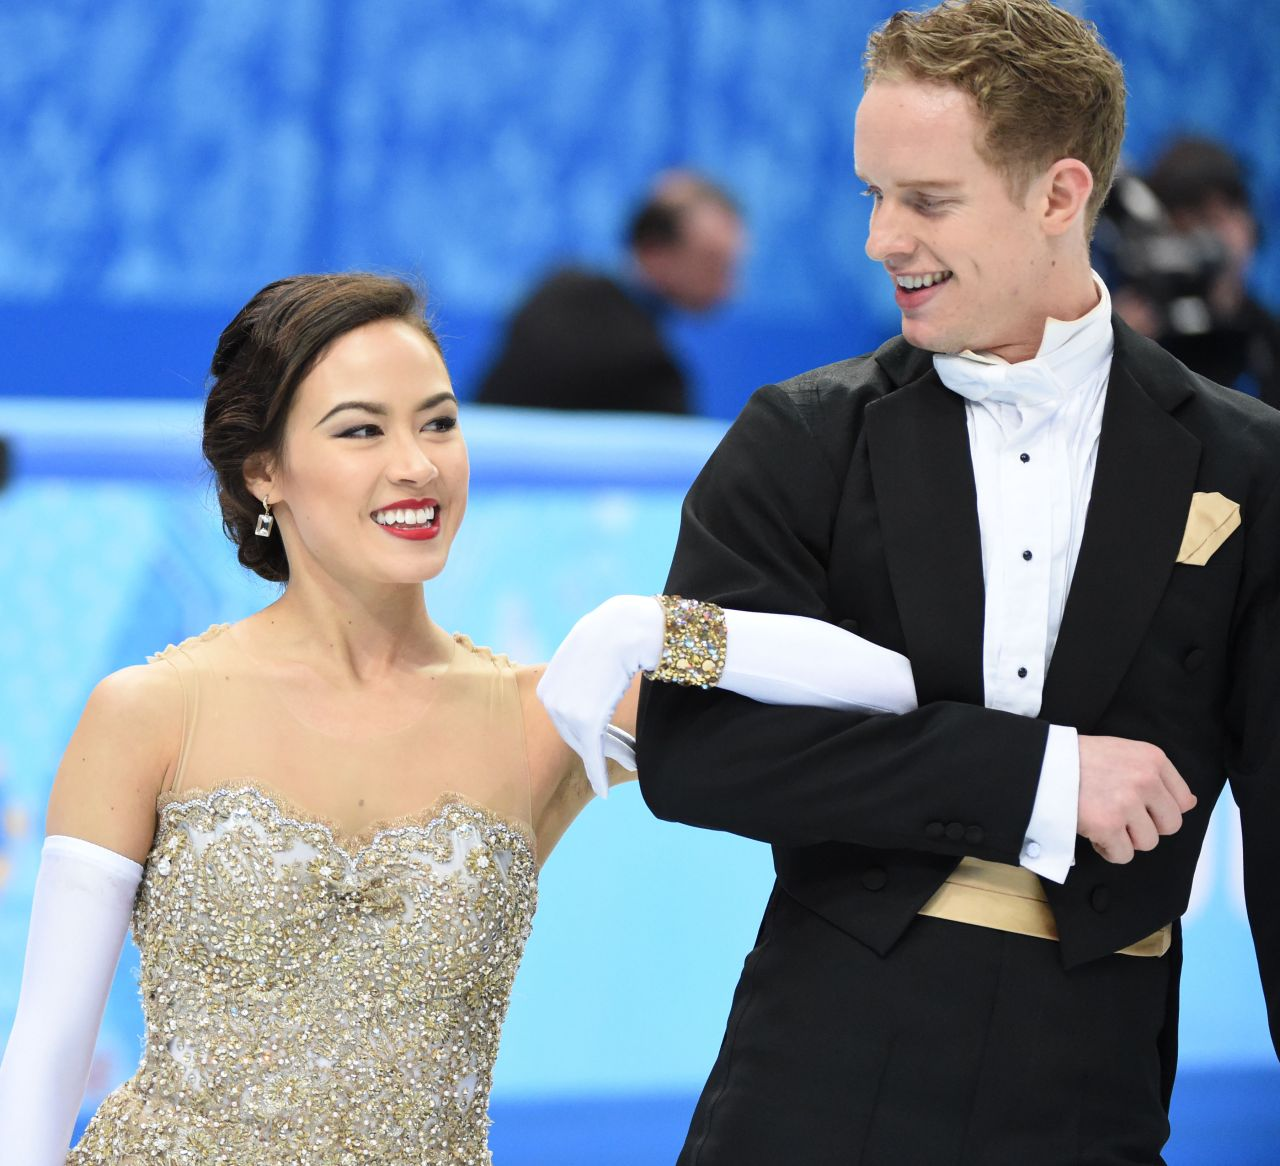 Madison Chock - 2014 Sochi Winter Olympics - Figure Skating Ice Dance